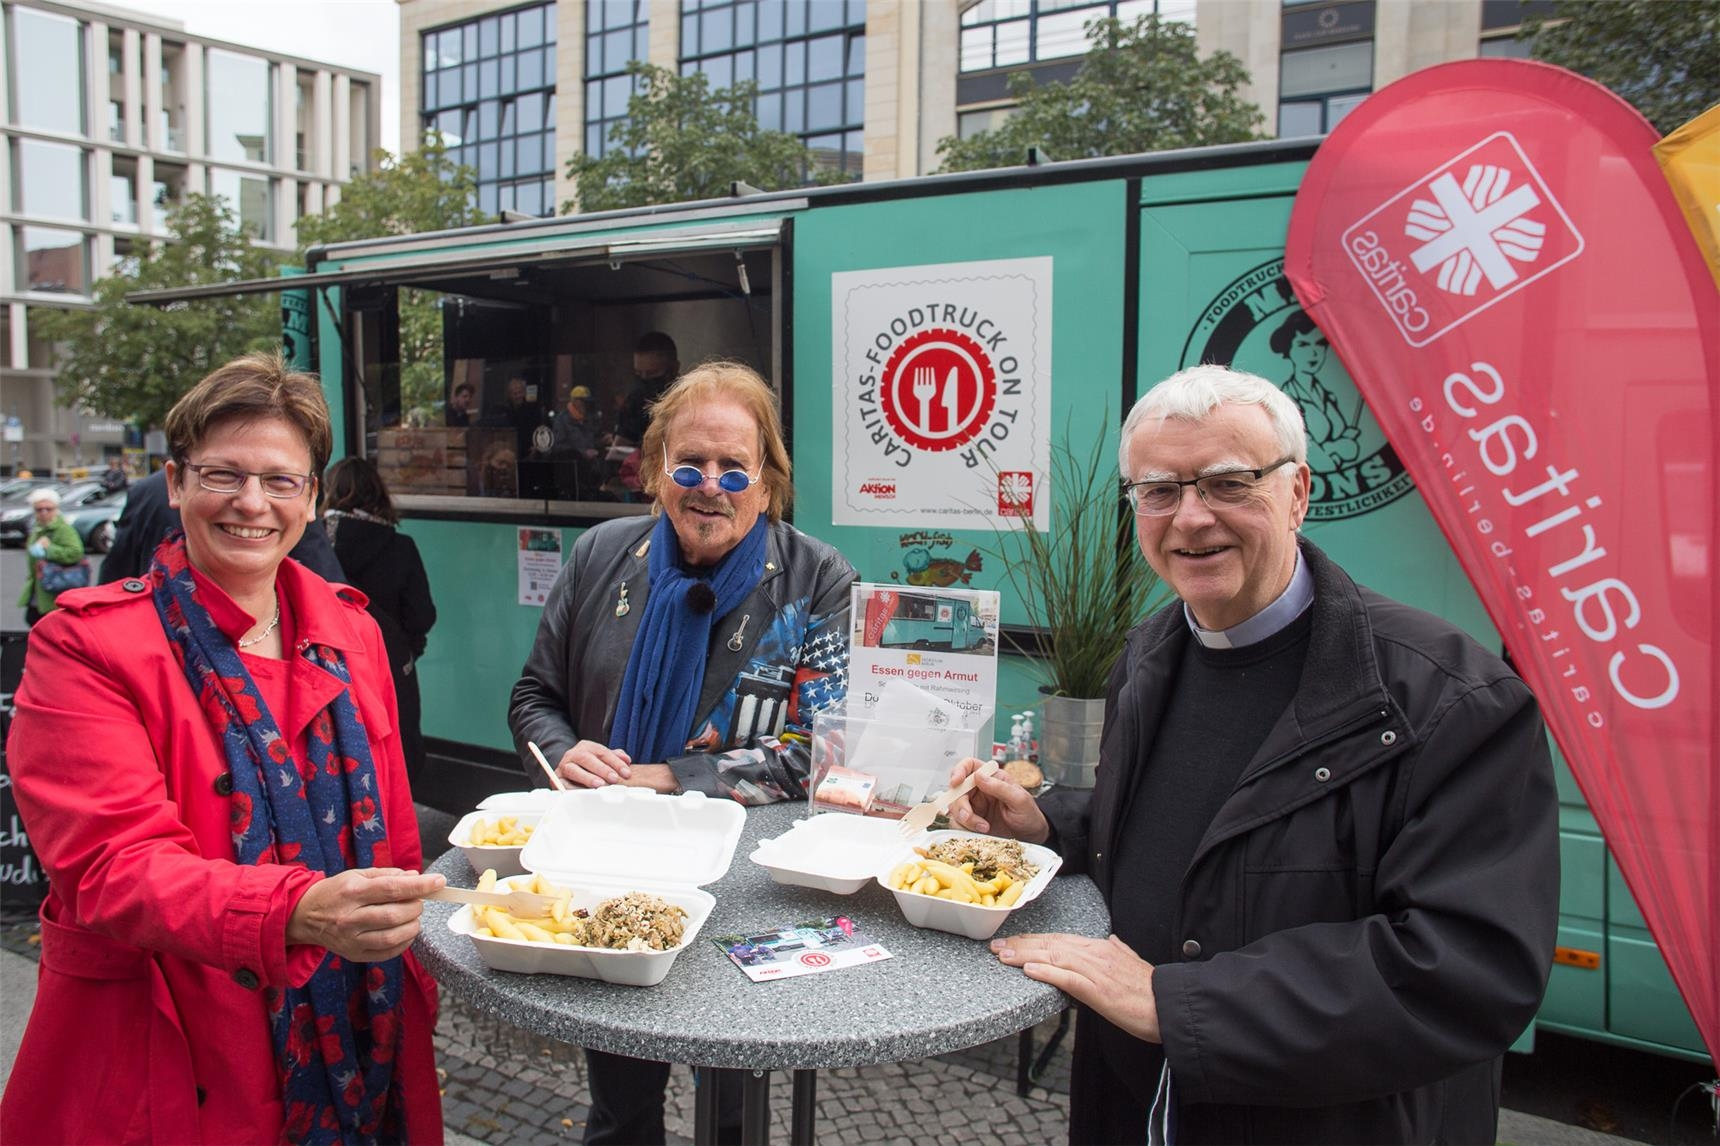 Spendenaktion Foodtruck (Walter Wetzler)